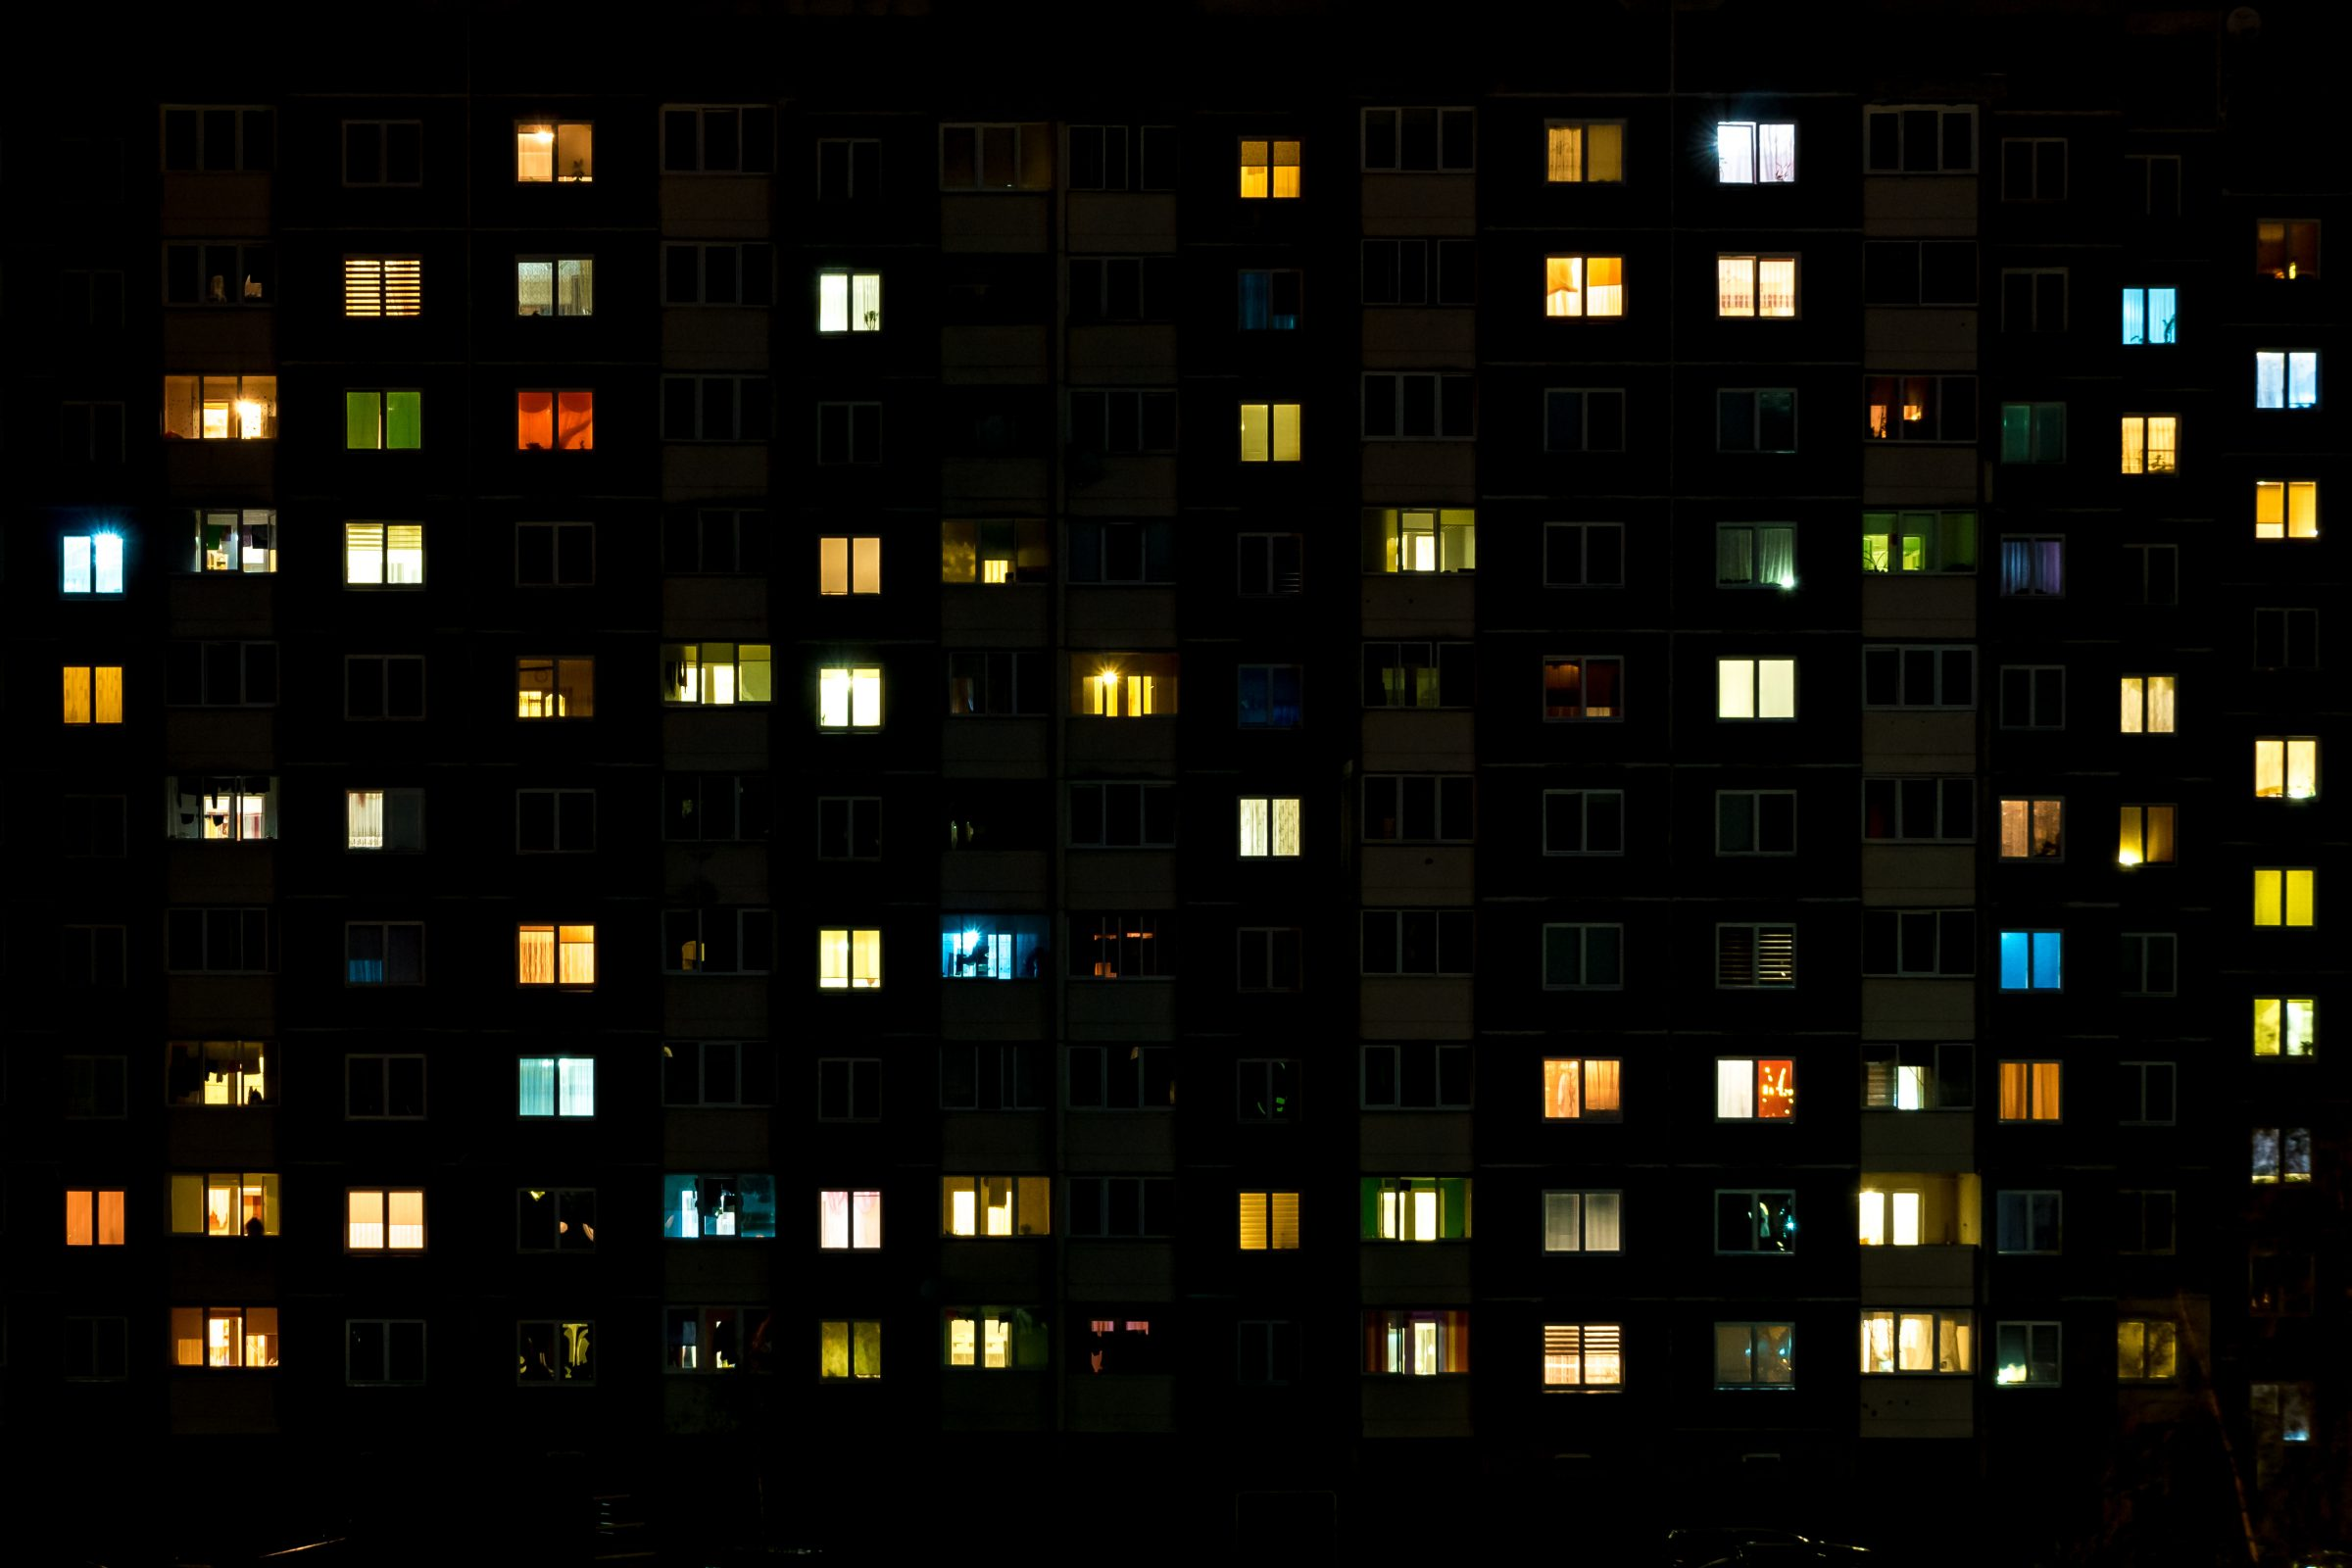 Use smart lighting when you're out for the night or on holiday to help you deter robberies